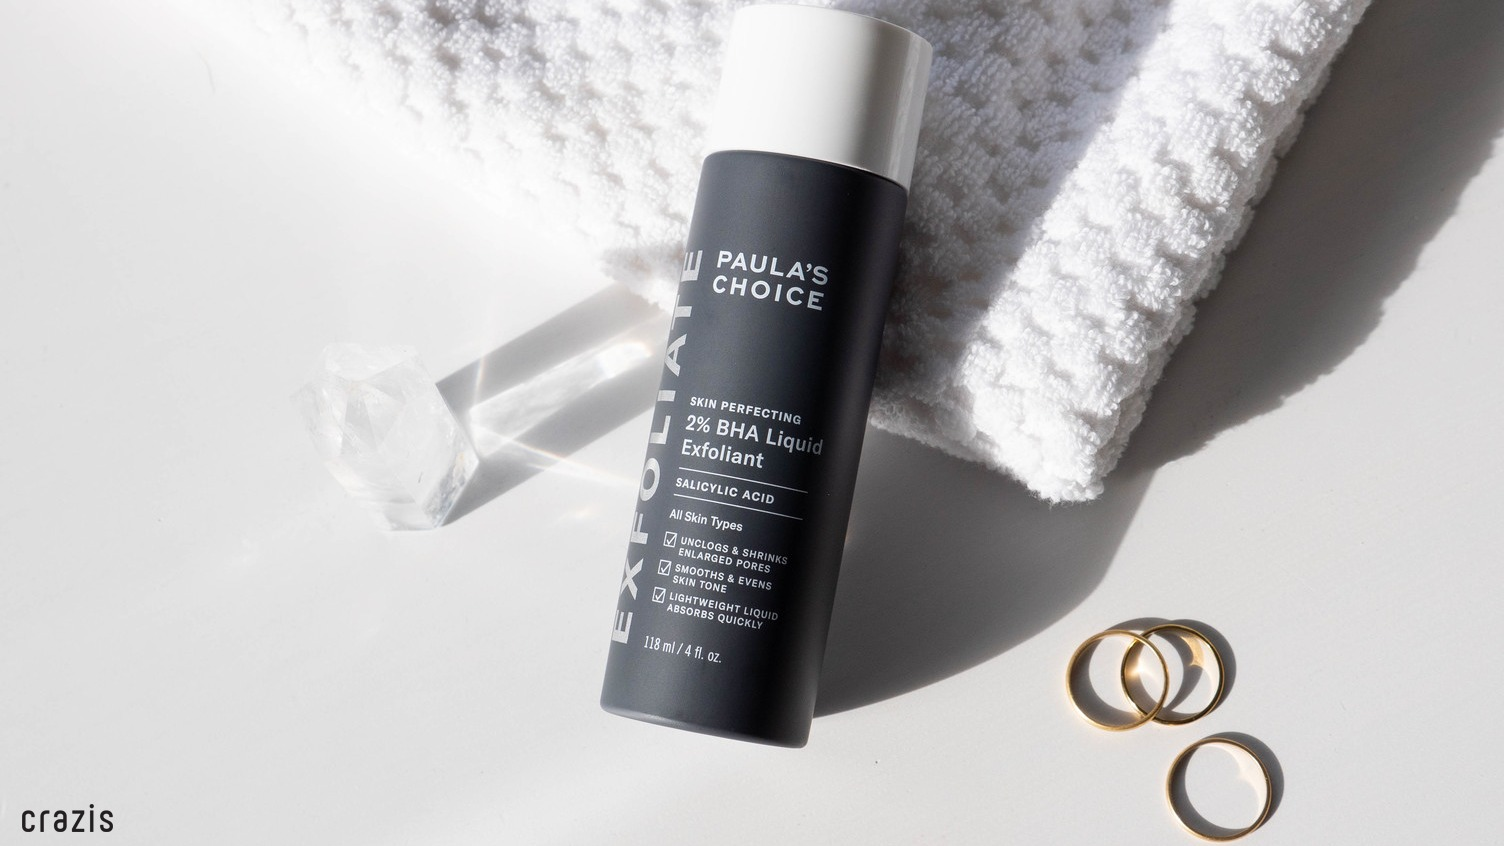 [Review] Paula's Choice Skin Perfecting 2% BHA Liquid Exfoliant